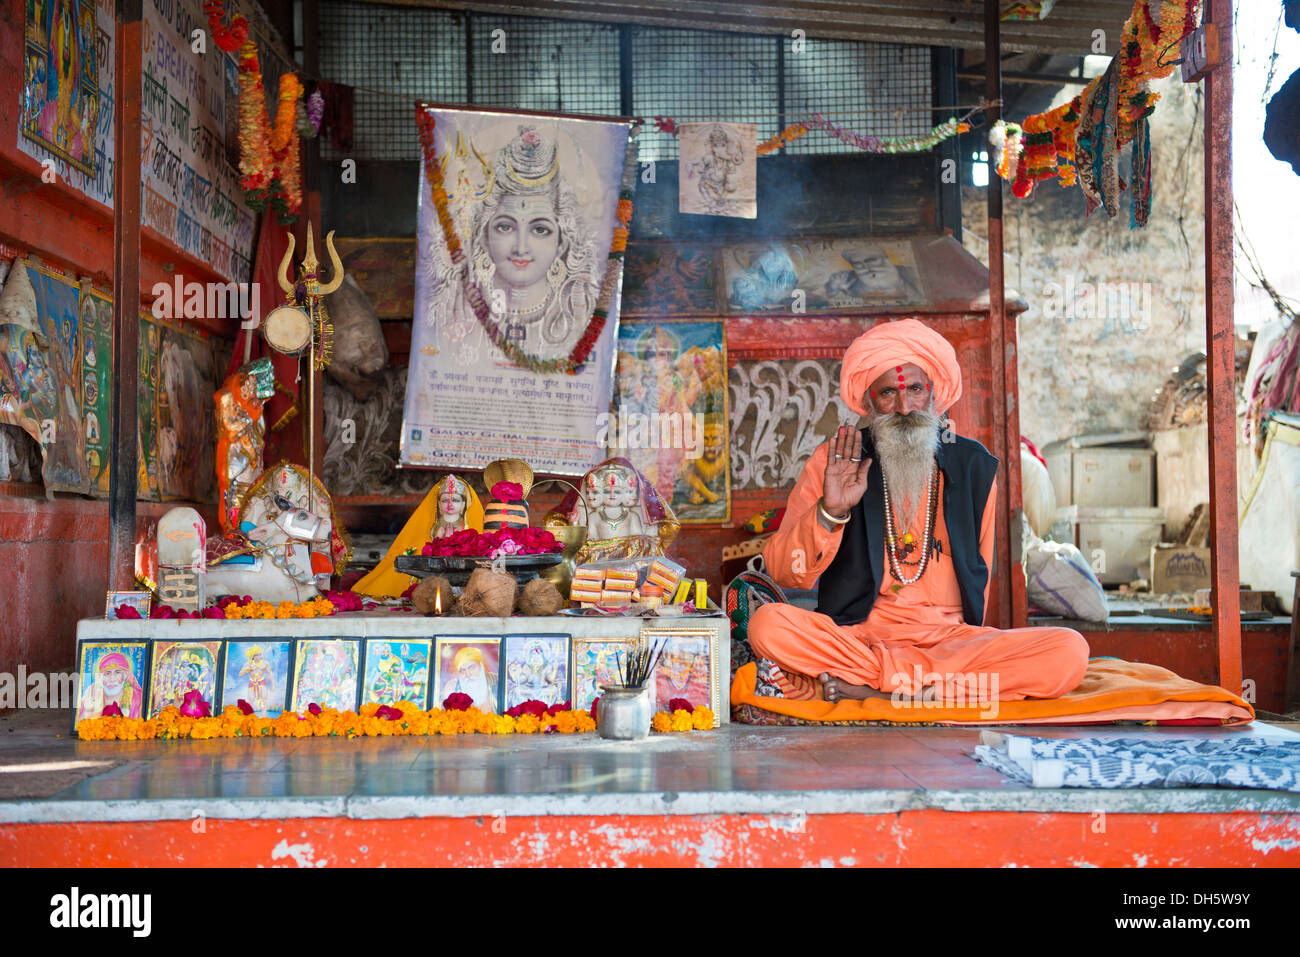 Sadhu, a holy man or wandering ascetic sitting in the lotus position on a mat in a Hindu prayer shrine, Pushkar, Rajasthan - Stock Image